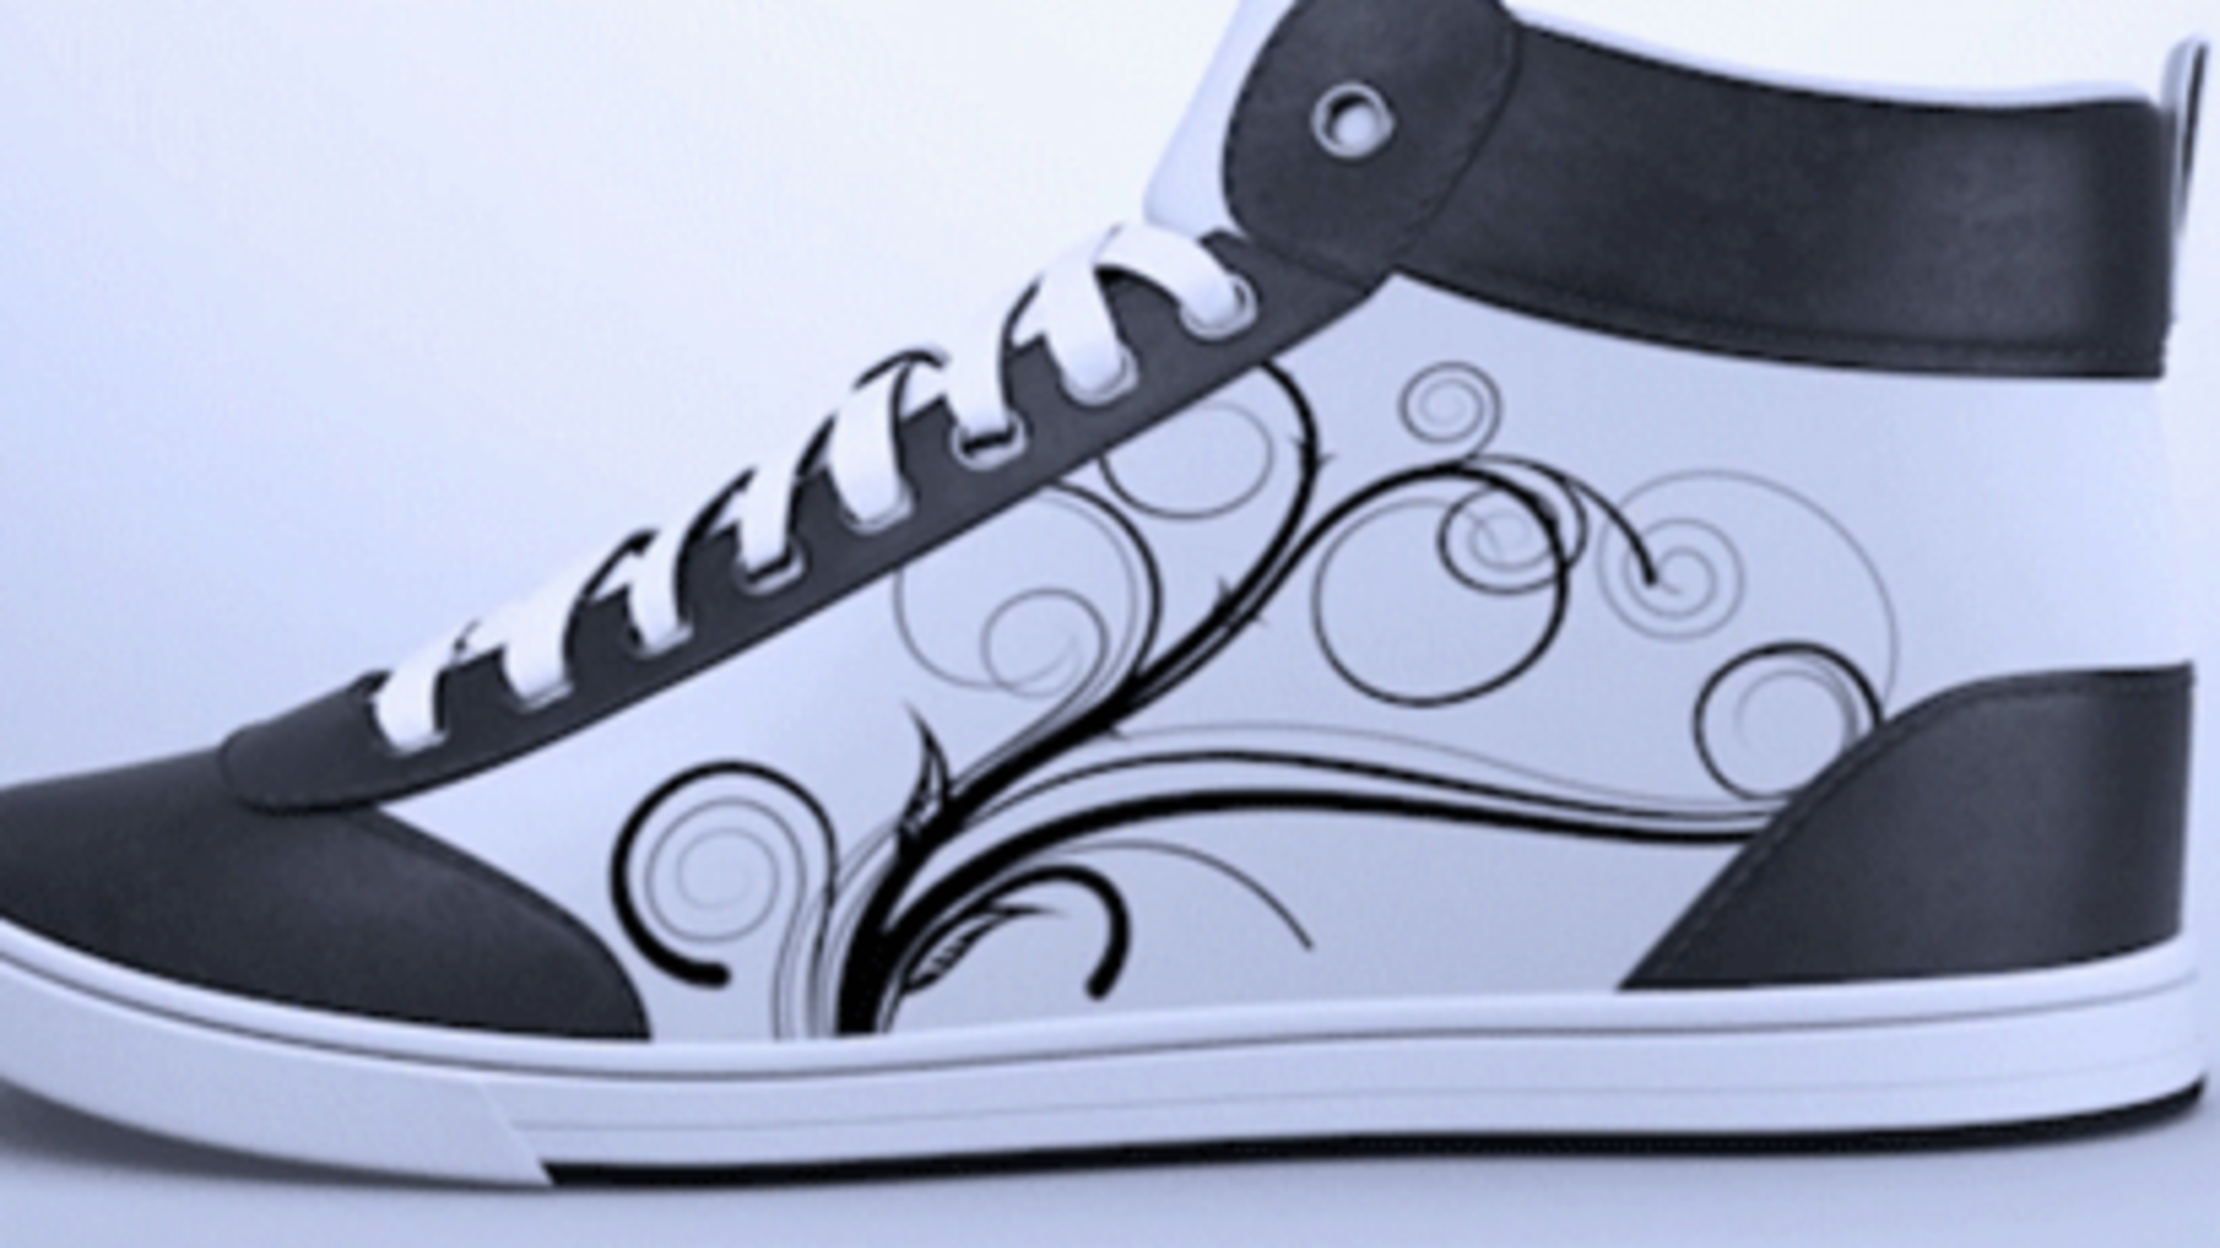 This Digital Sneaker Concept Lets You Upload Designs From